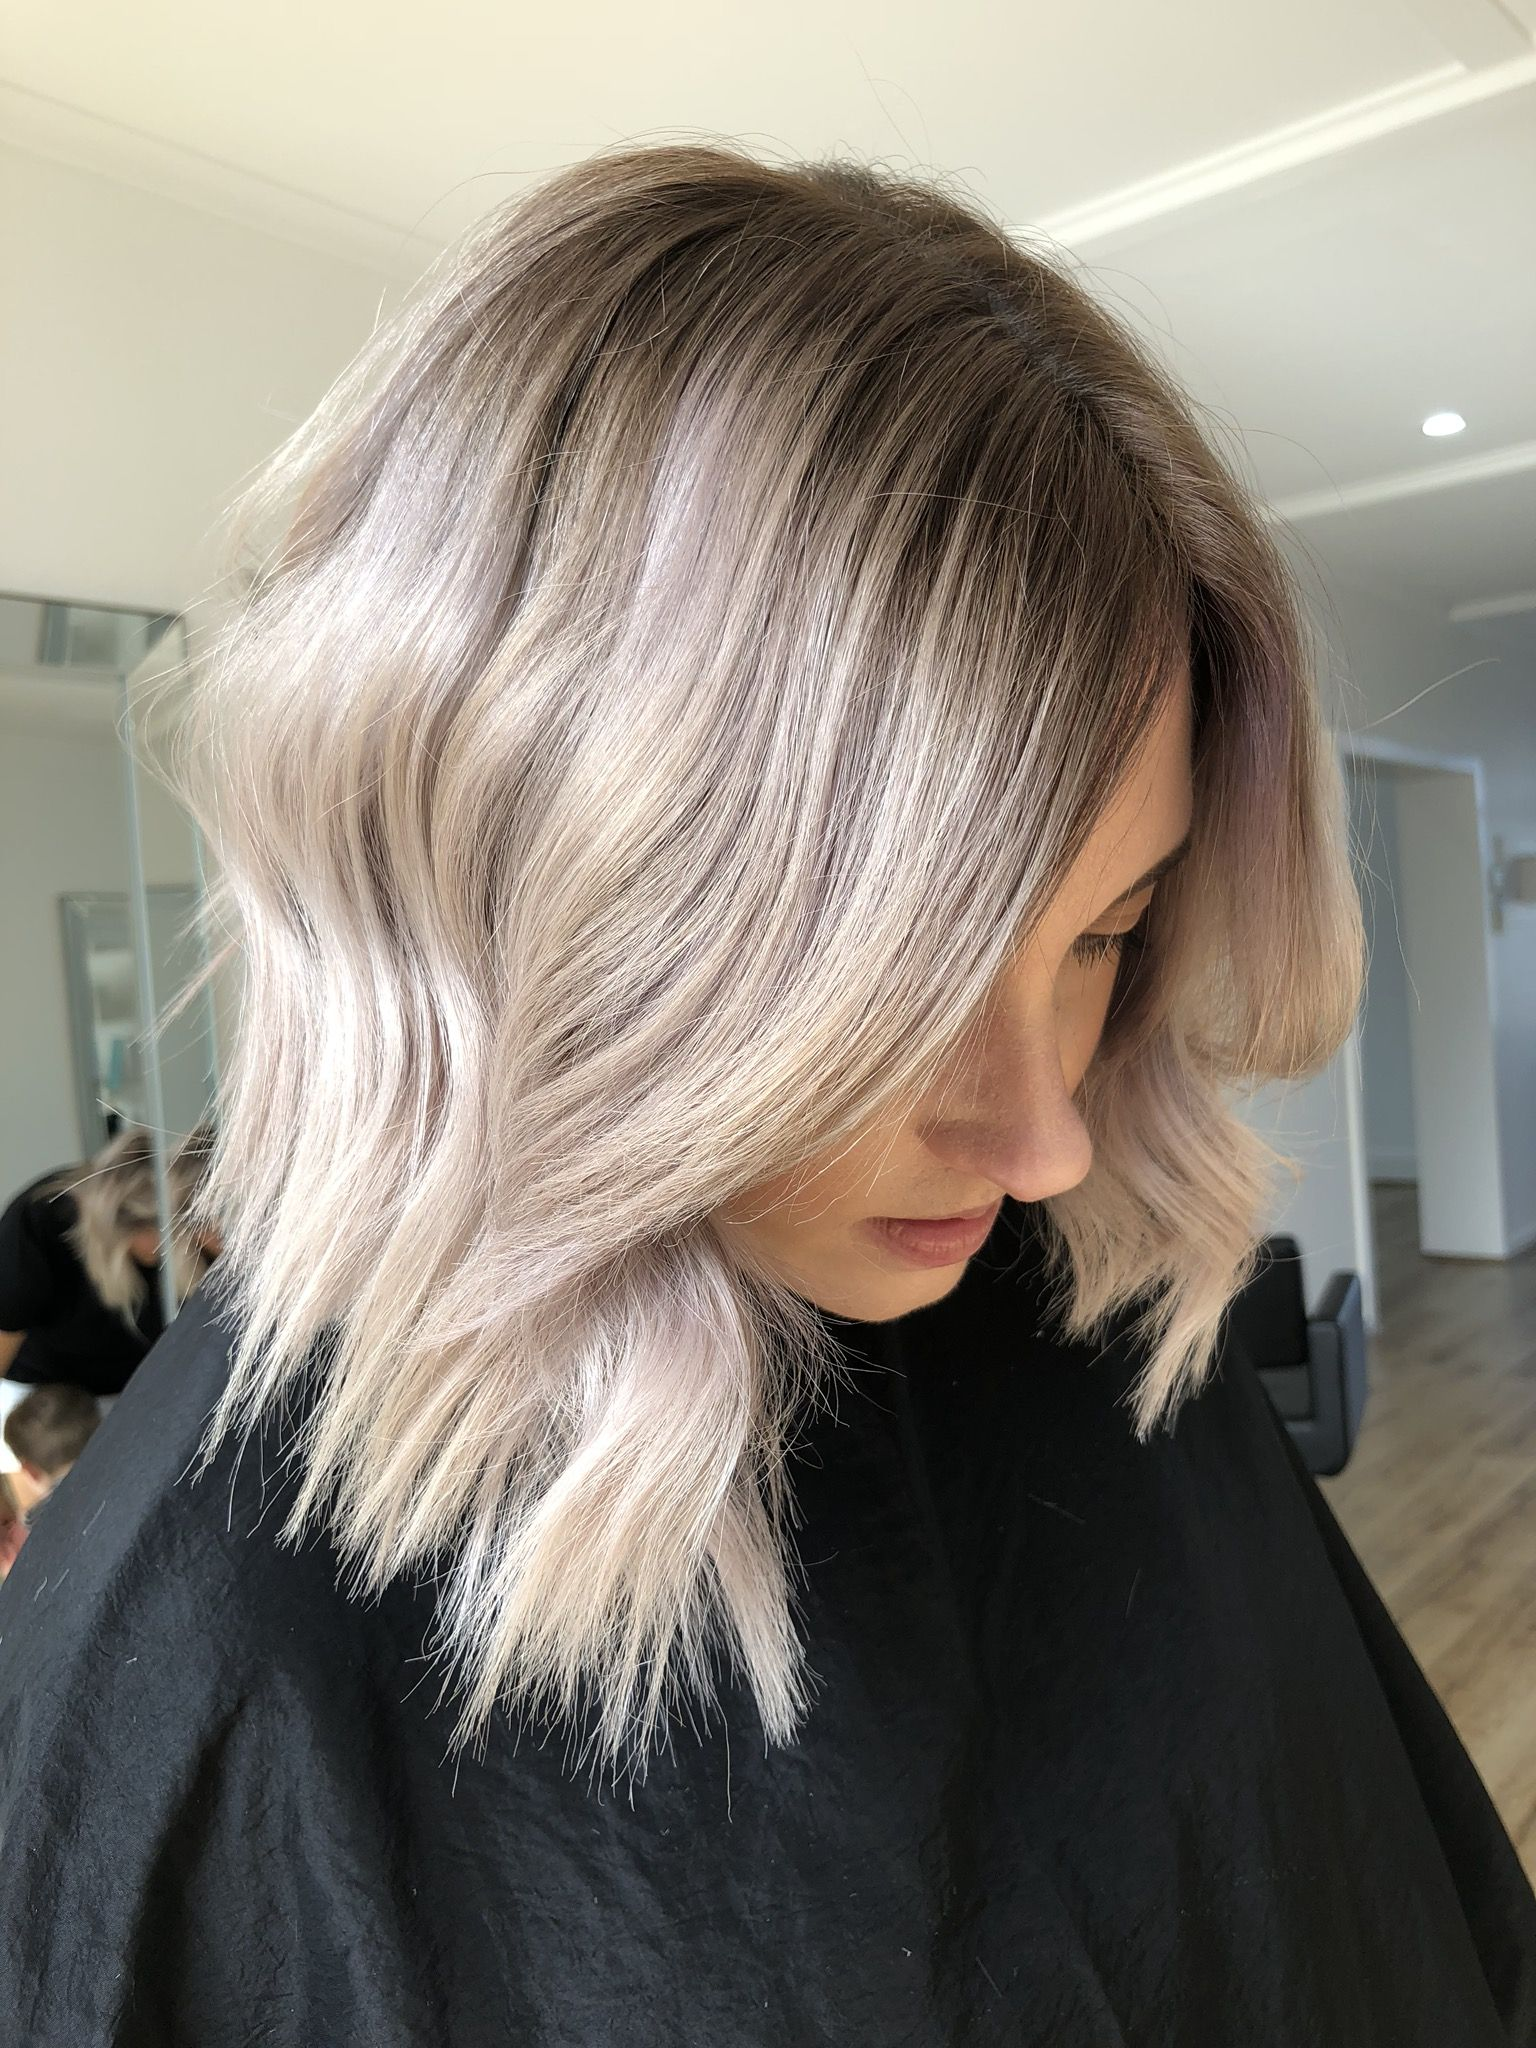 Cool Balayage Jamie Hotteshair Hotteshair With Images